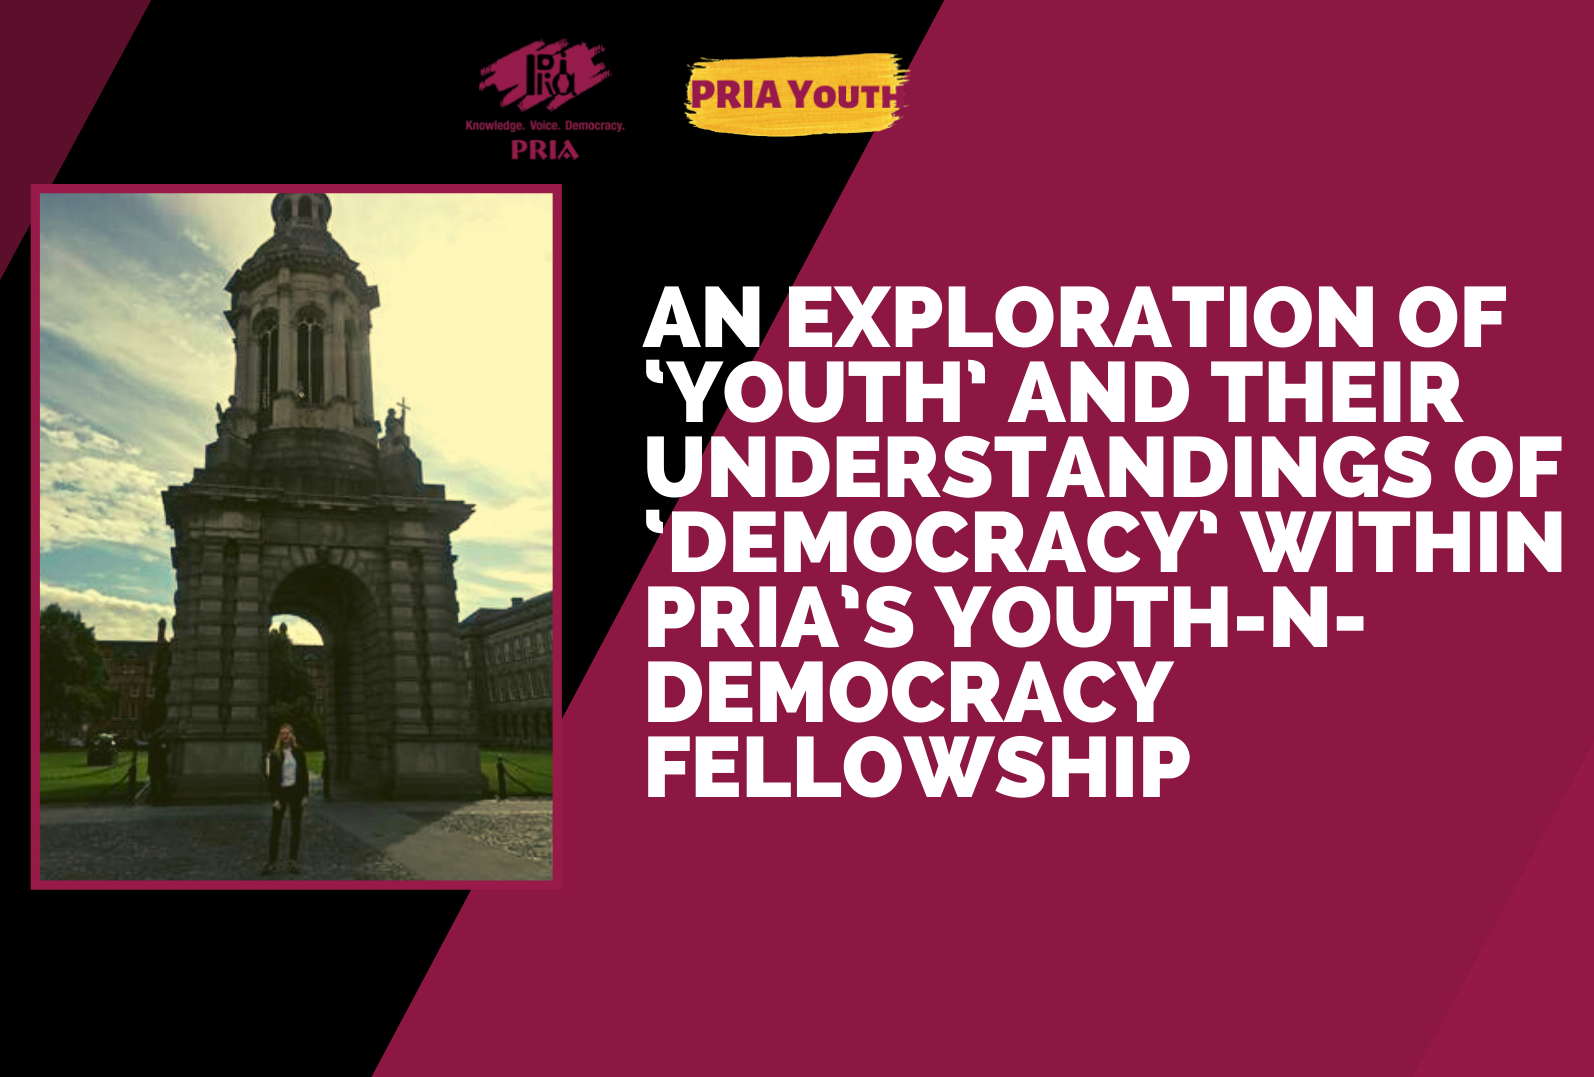 An exploration of 'youth' and their understandings of 'democracy' in a youth program